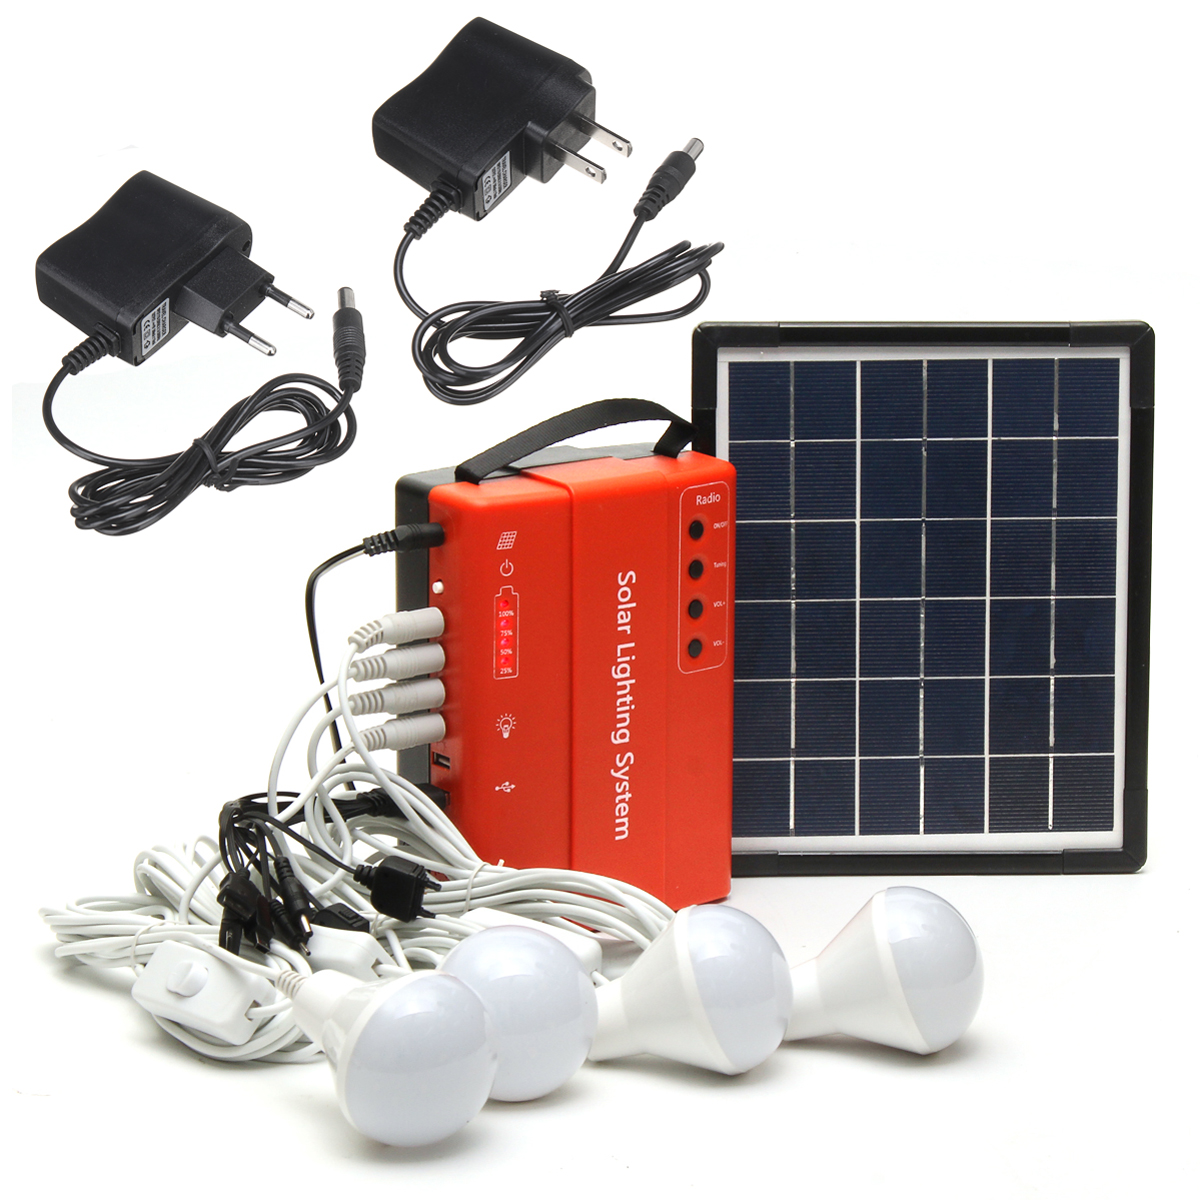 5W 9V Portable Solar Panel Power Storage Generator LED Light USB Charger Outdoor Emergency System